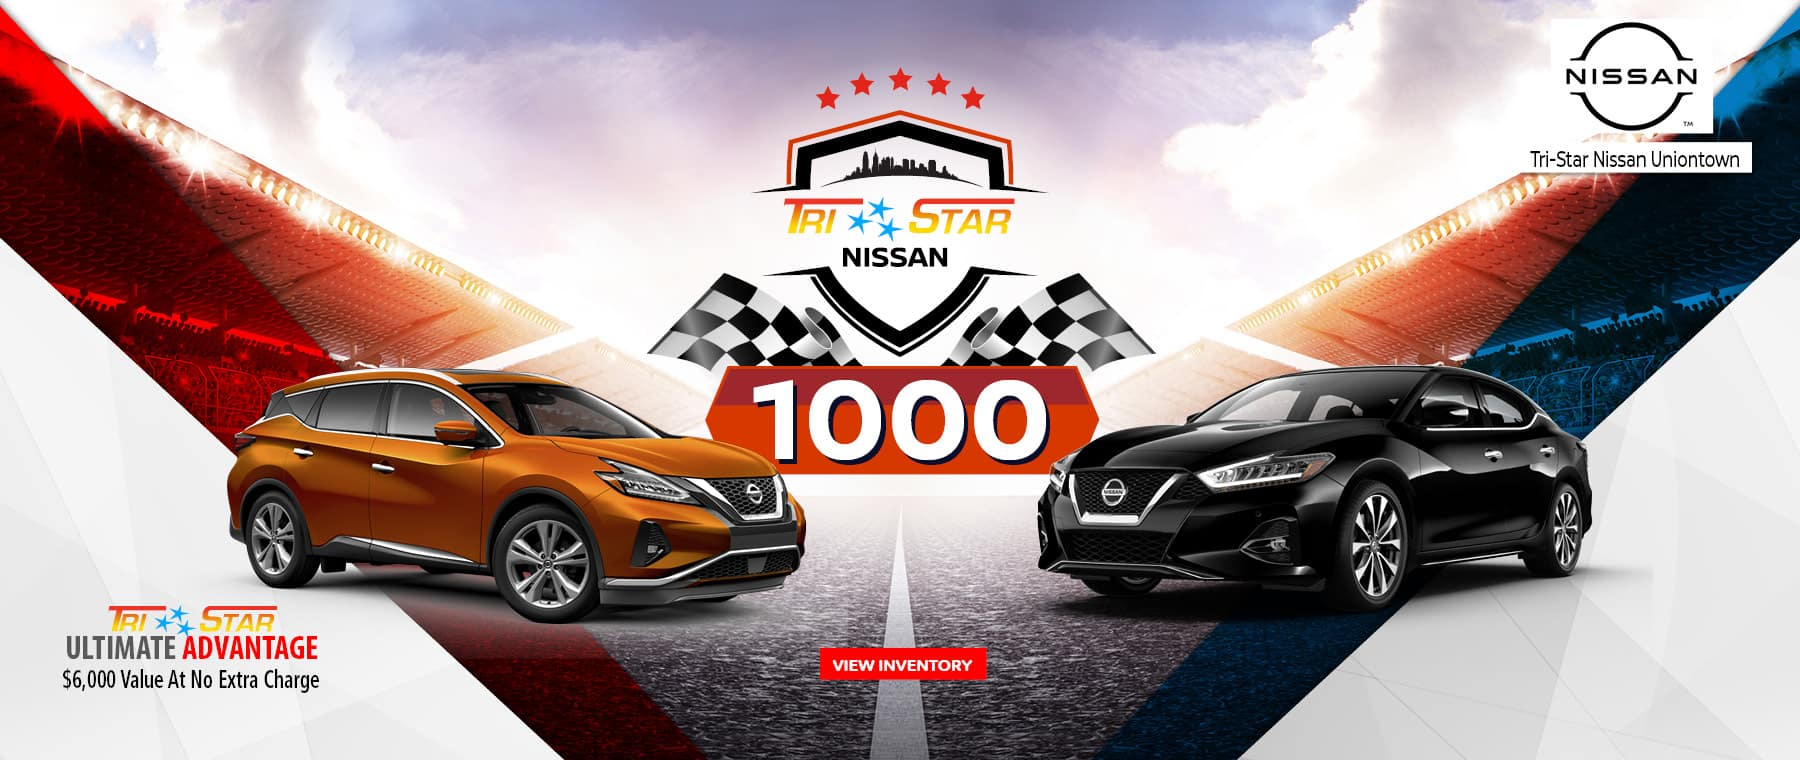 Race to 1000 Tri-Star Nissan